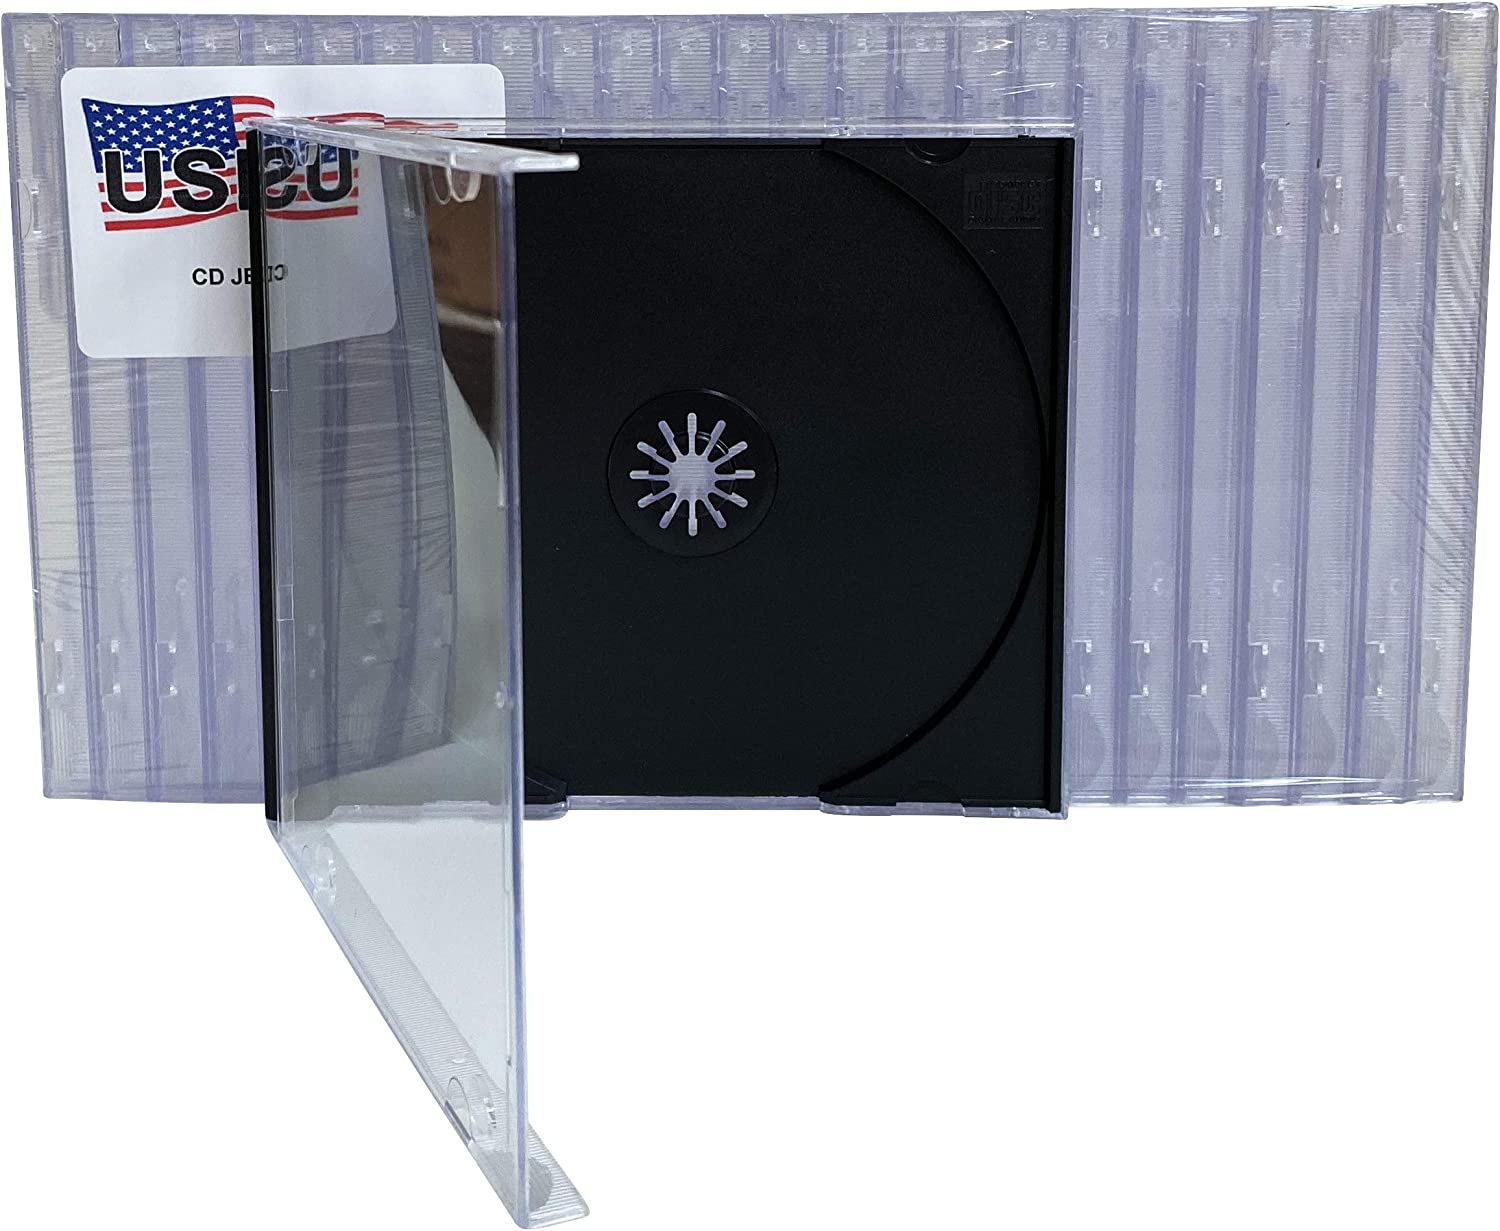 Double CD Maxi Jewel Case 10.4mm Spine Standard for 2 CDs with Black Tray New